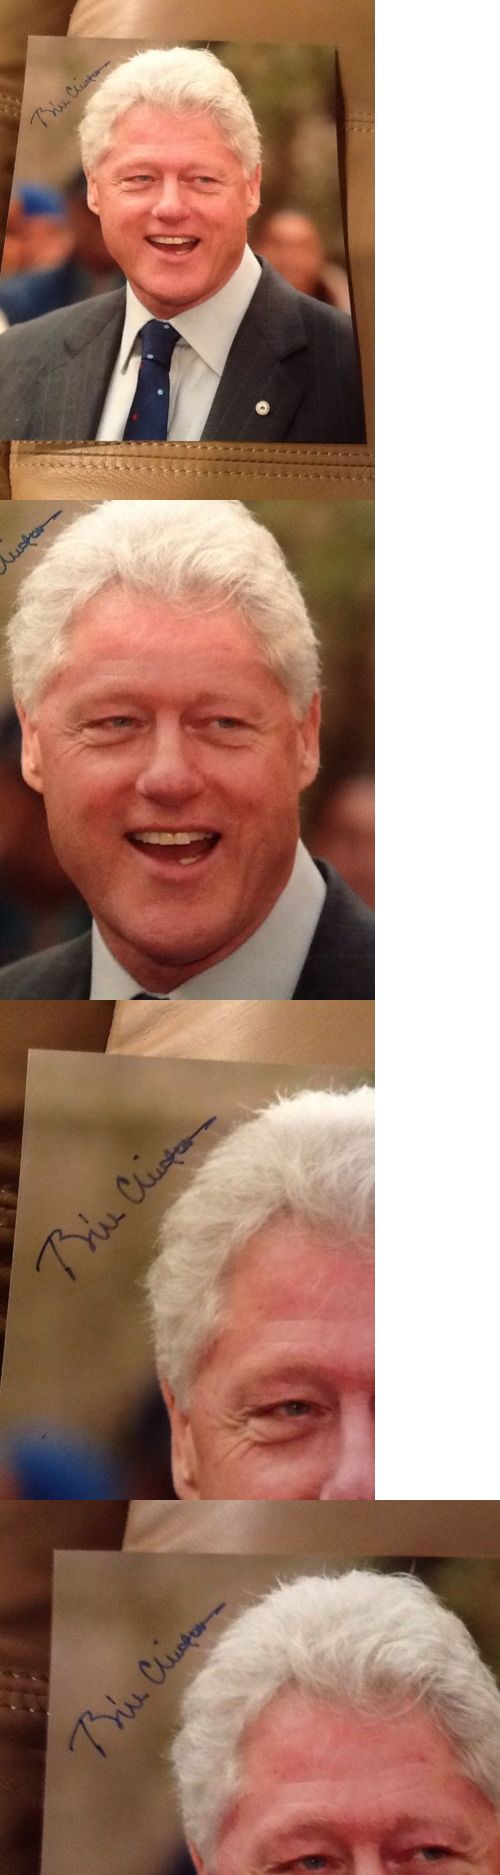 Bill Clinton: Bill Clinton Autographed Color Photo Democratic Us President 1992-2000 -> BUY IT NOW ONLY: $169.99 on eBay!